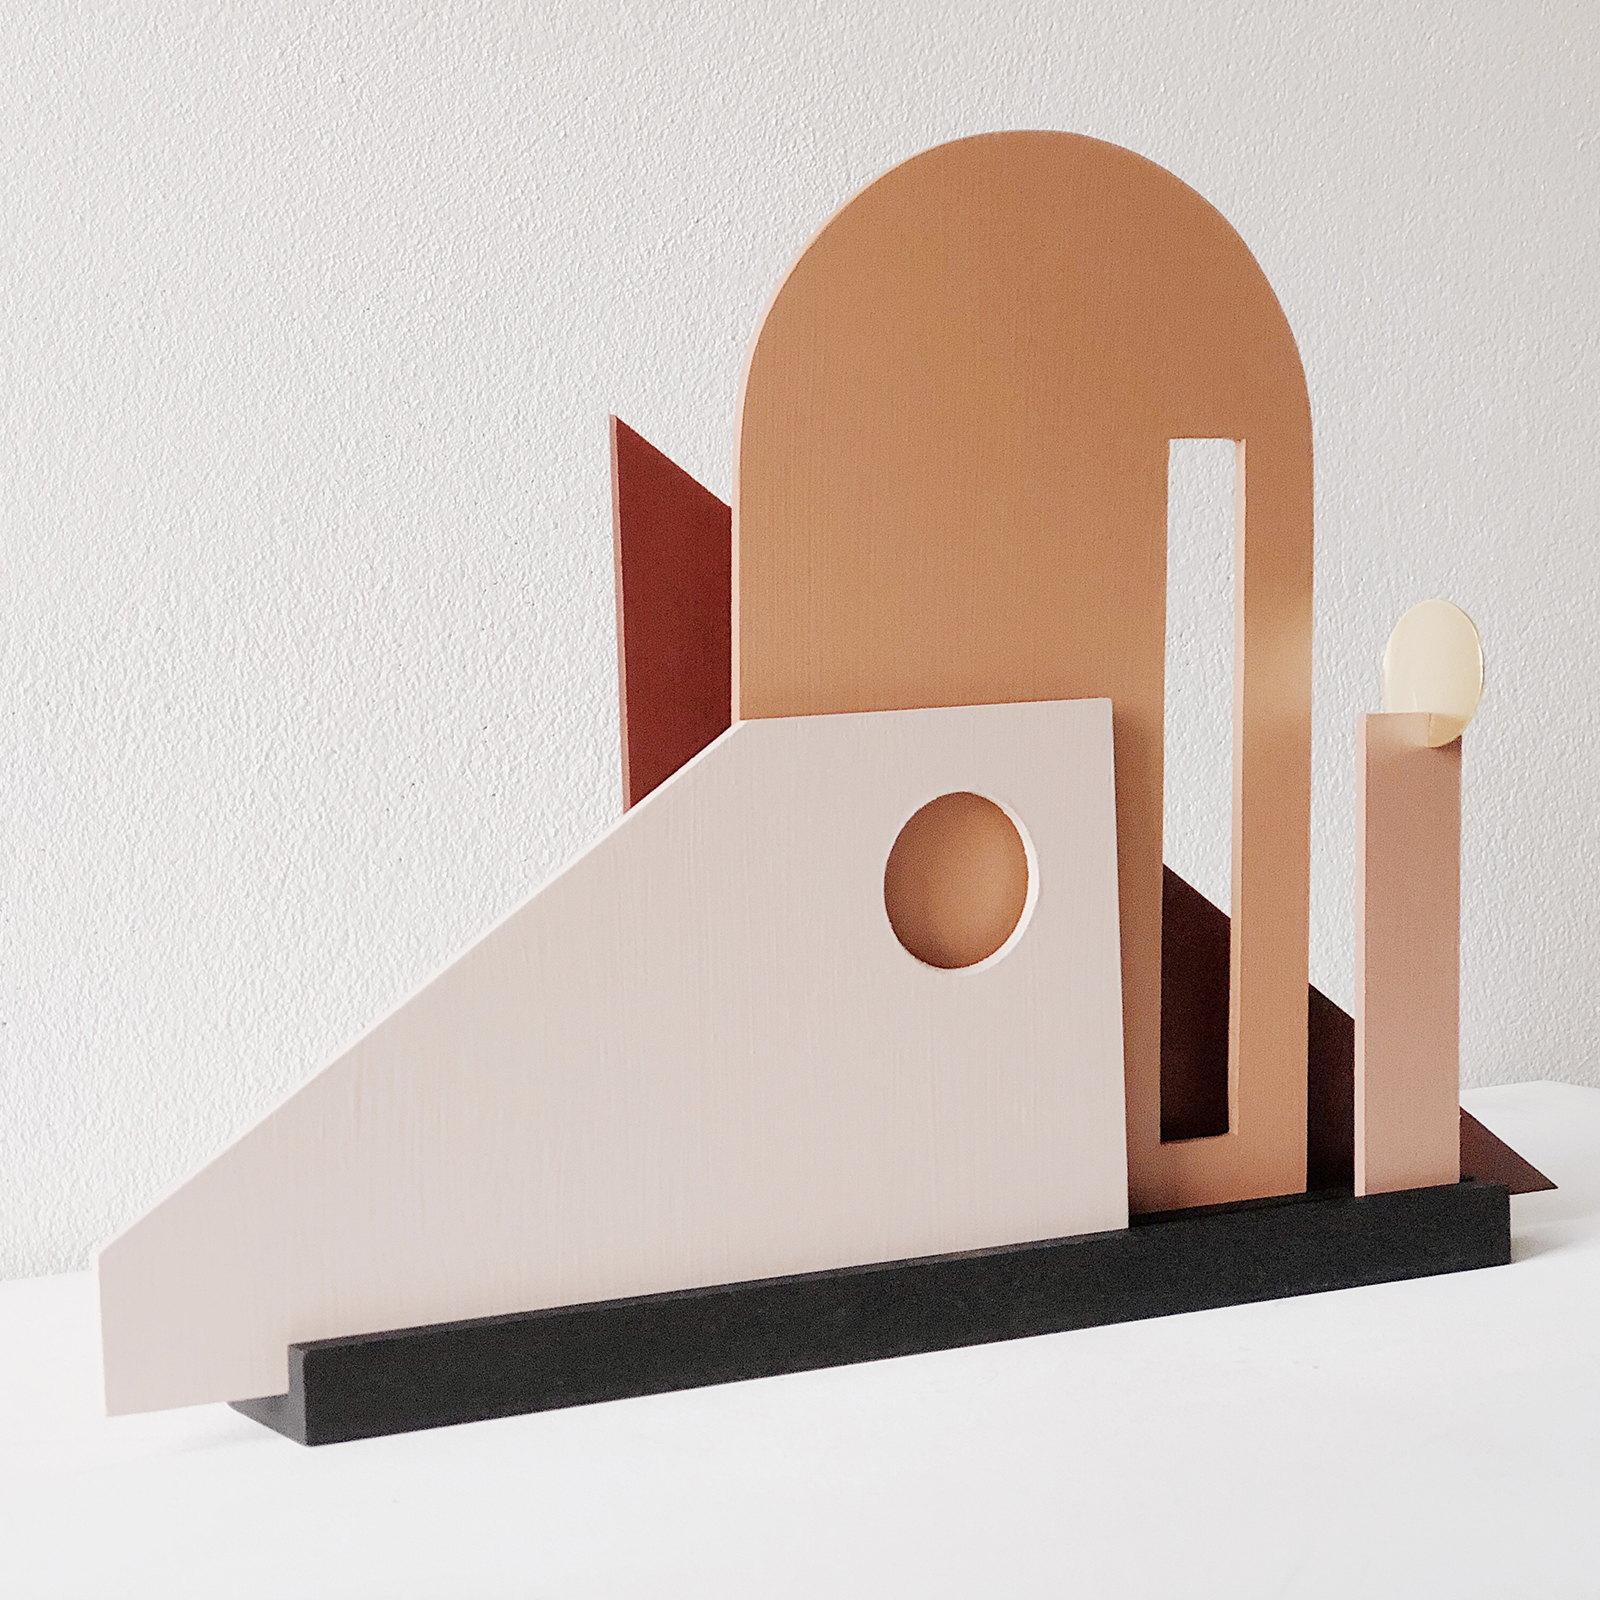 Moving Frames Sculpture In Timber And Brass By Hearth Collective (alichia Van Rhijn) 04